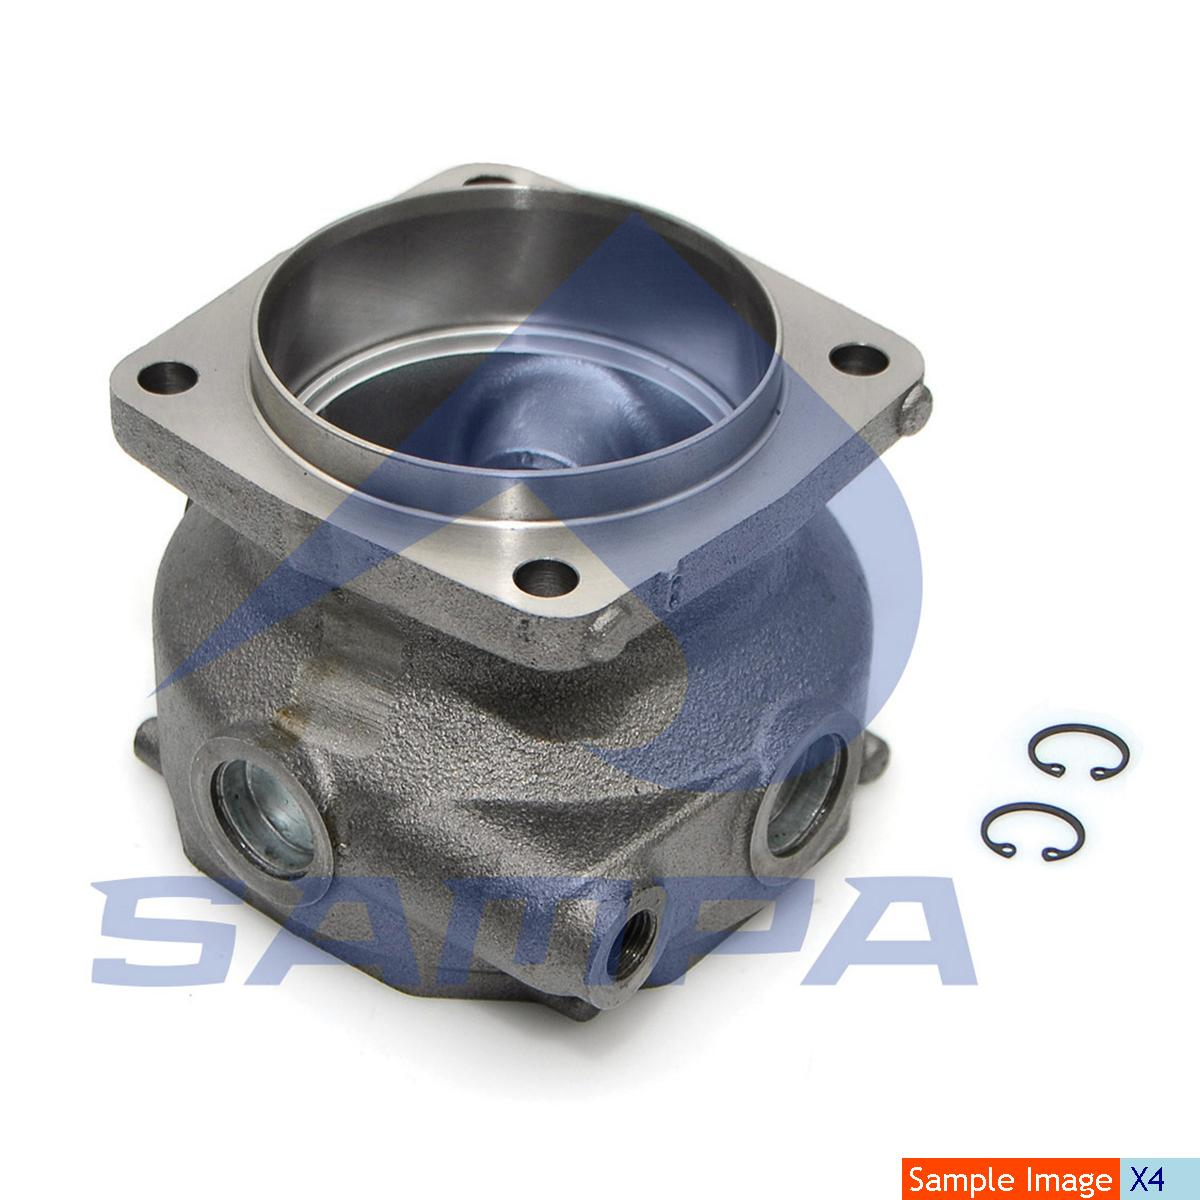 Cylinder Liner & Piston With Rings, Piston, R.V.I., Compressed Air System